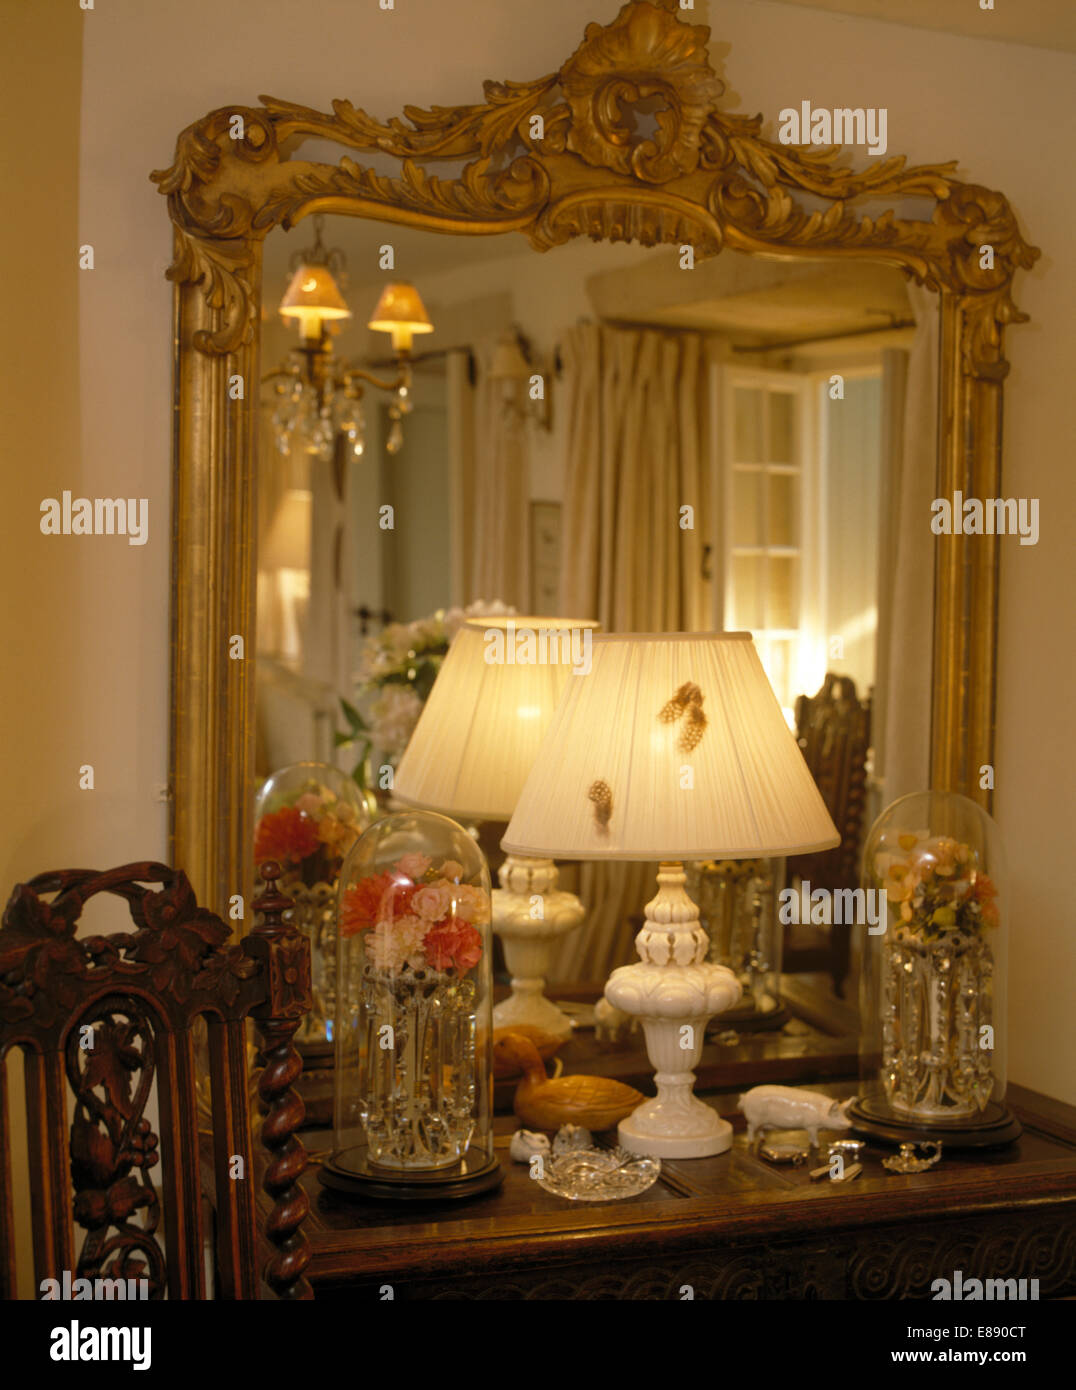 Close Up Of Large Ornate Antique Mirror Above Shelf With Lighted